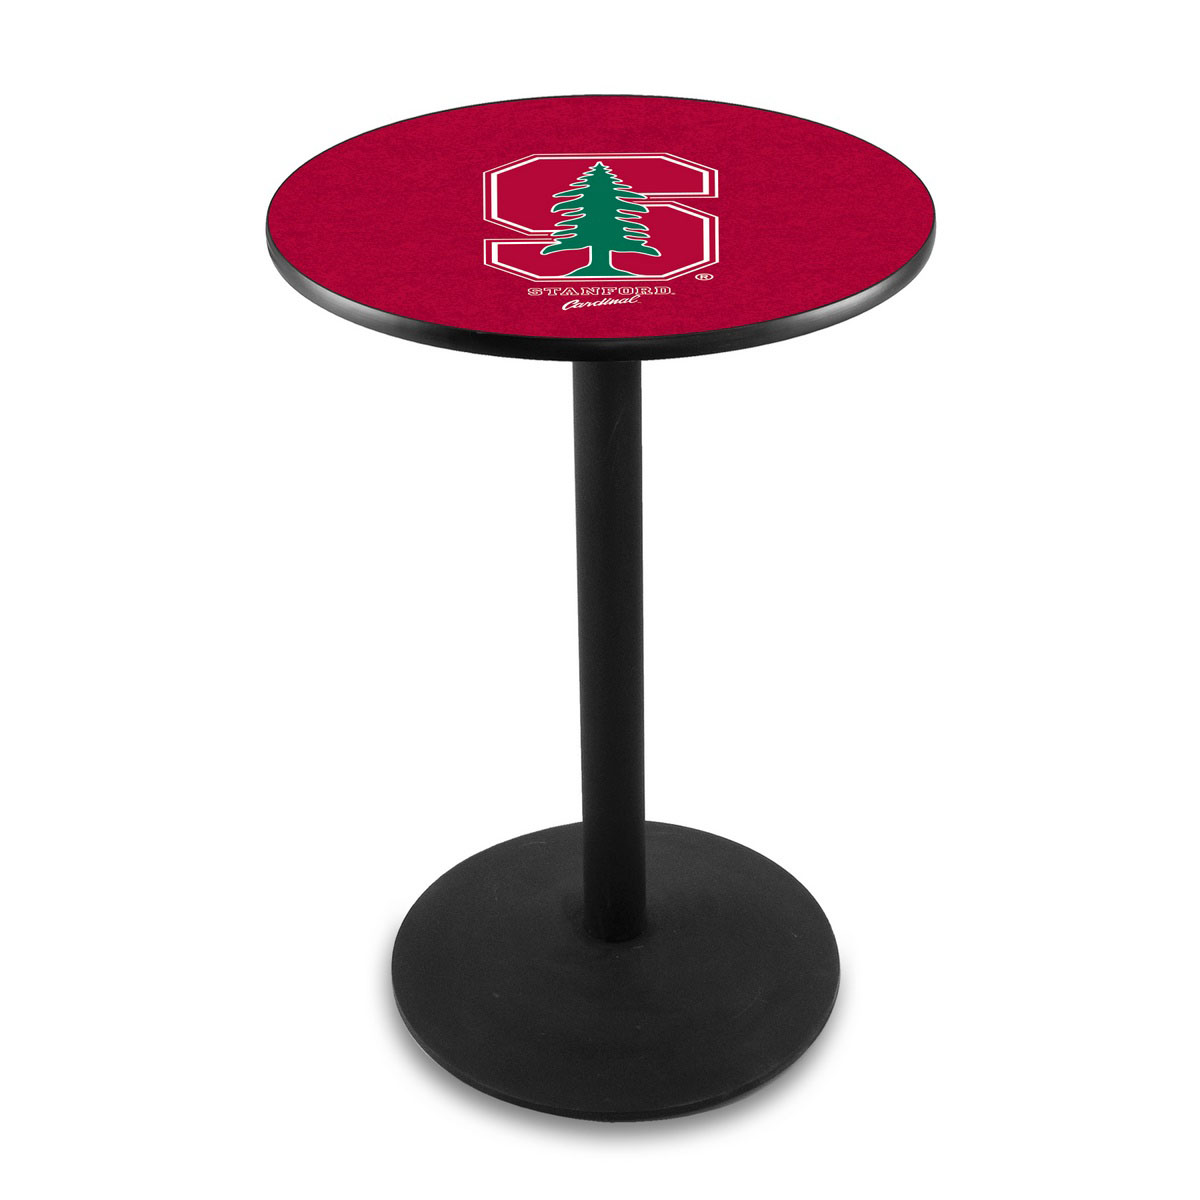 Check out the Stanford University Logo Pub Bar Table Round Stand Product Photo